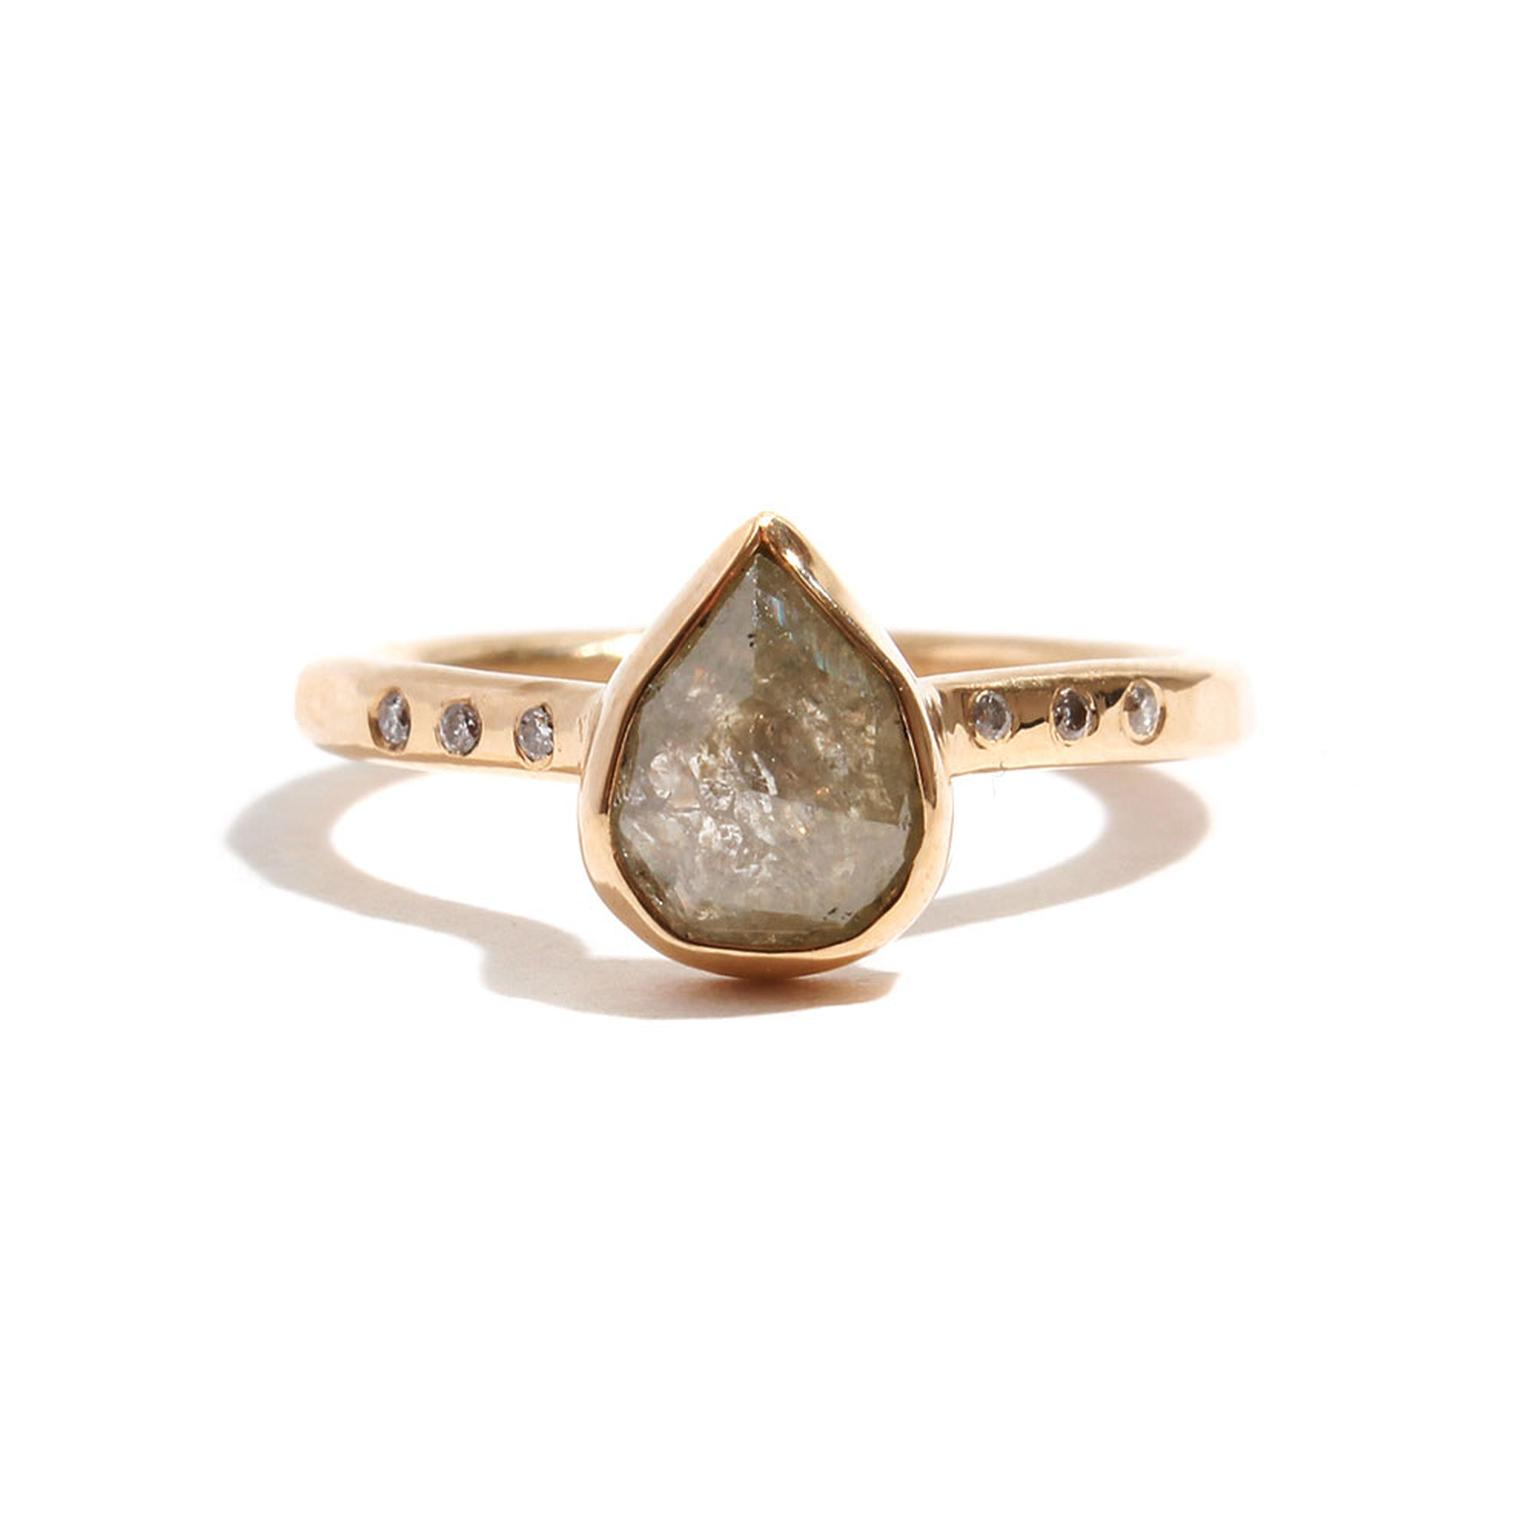 Melissa Joy Manning teardrop diamond ring